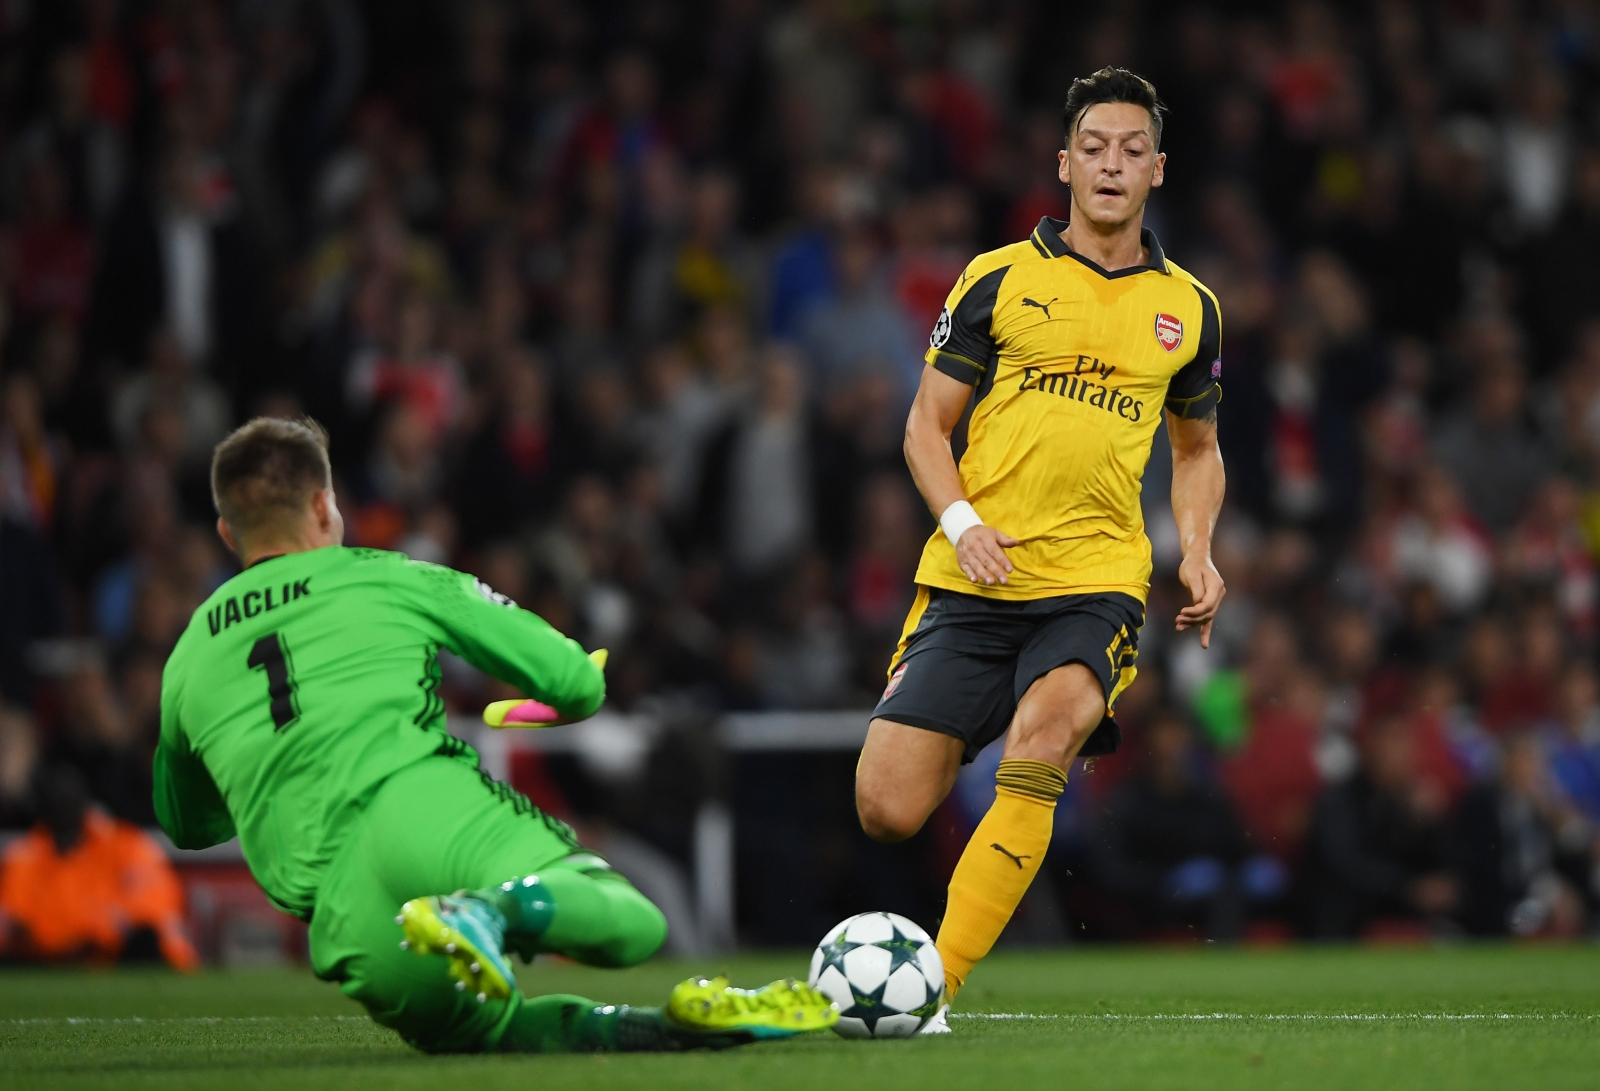 Mesut Ozil tries to reach the ball